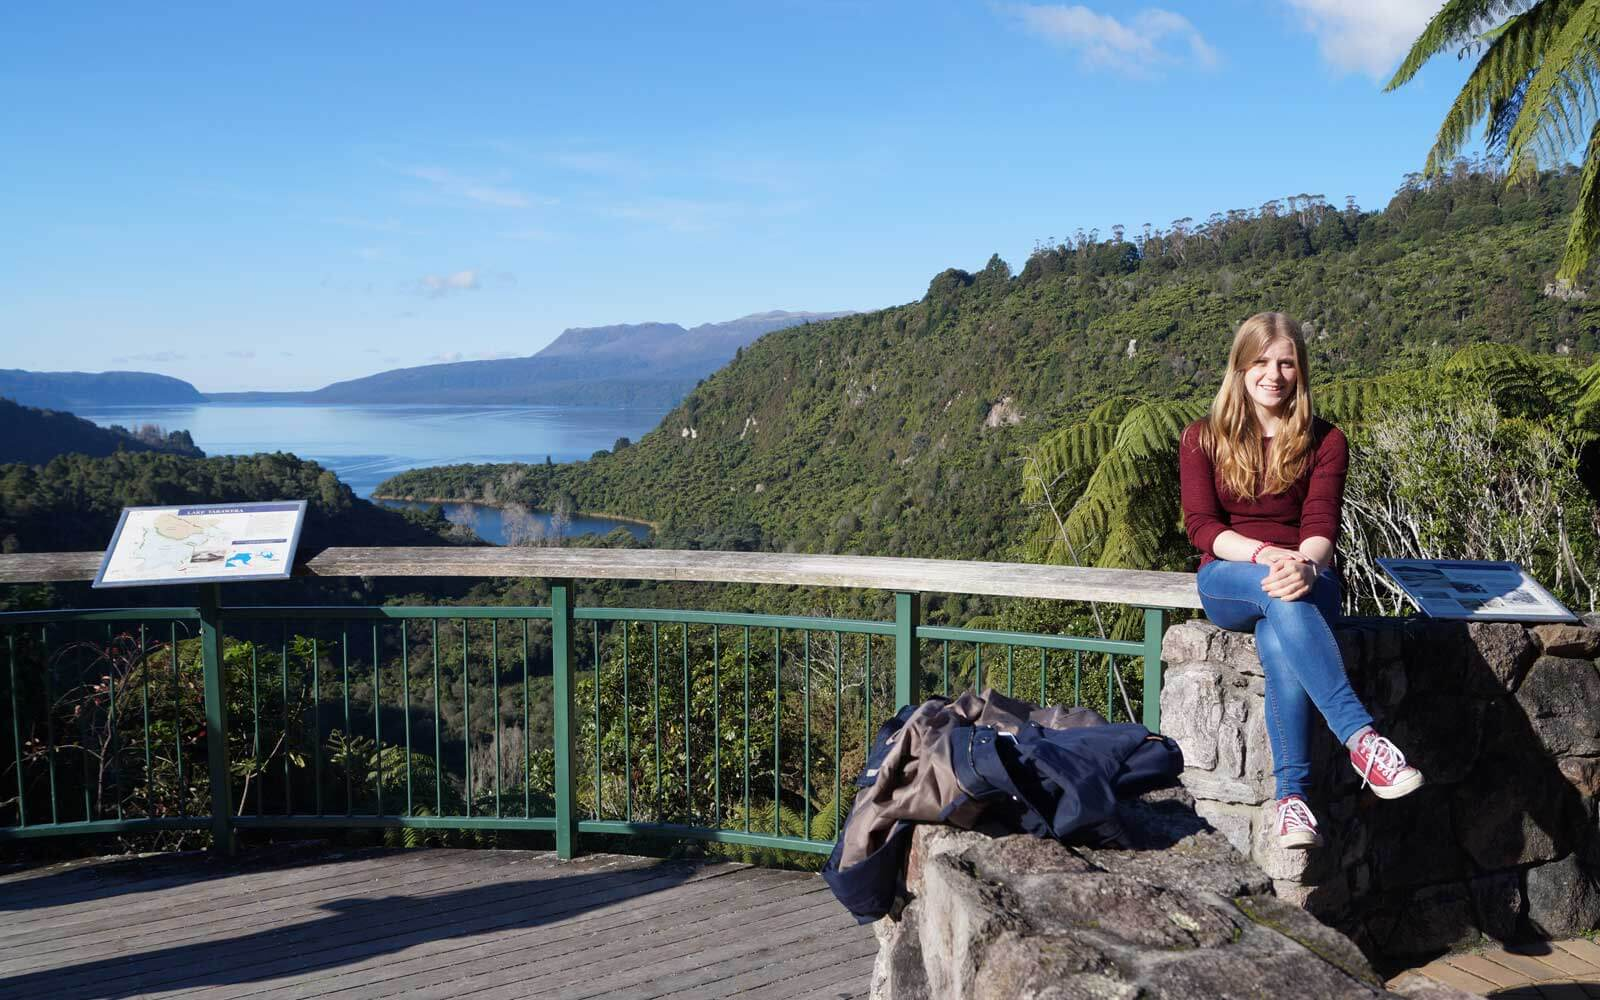 Lena am Lake Tarawera in Neuseeland